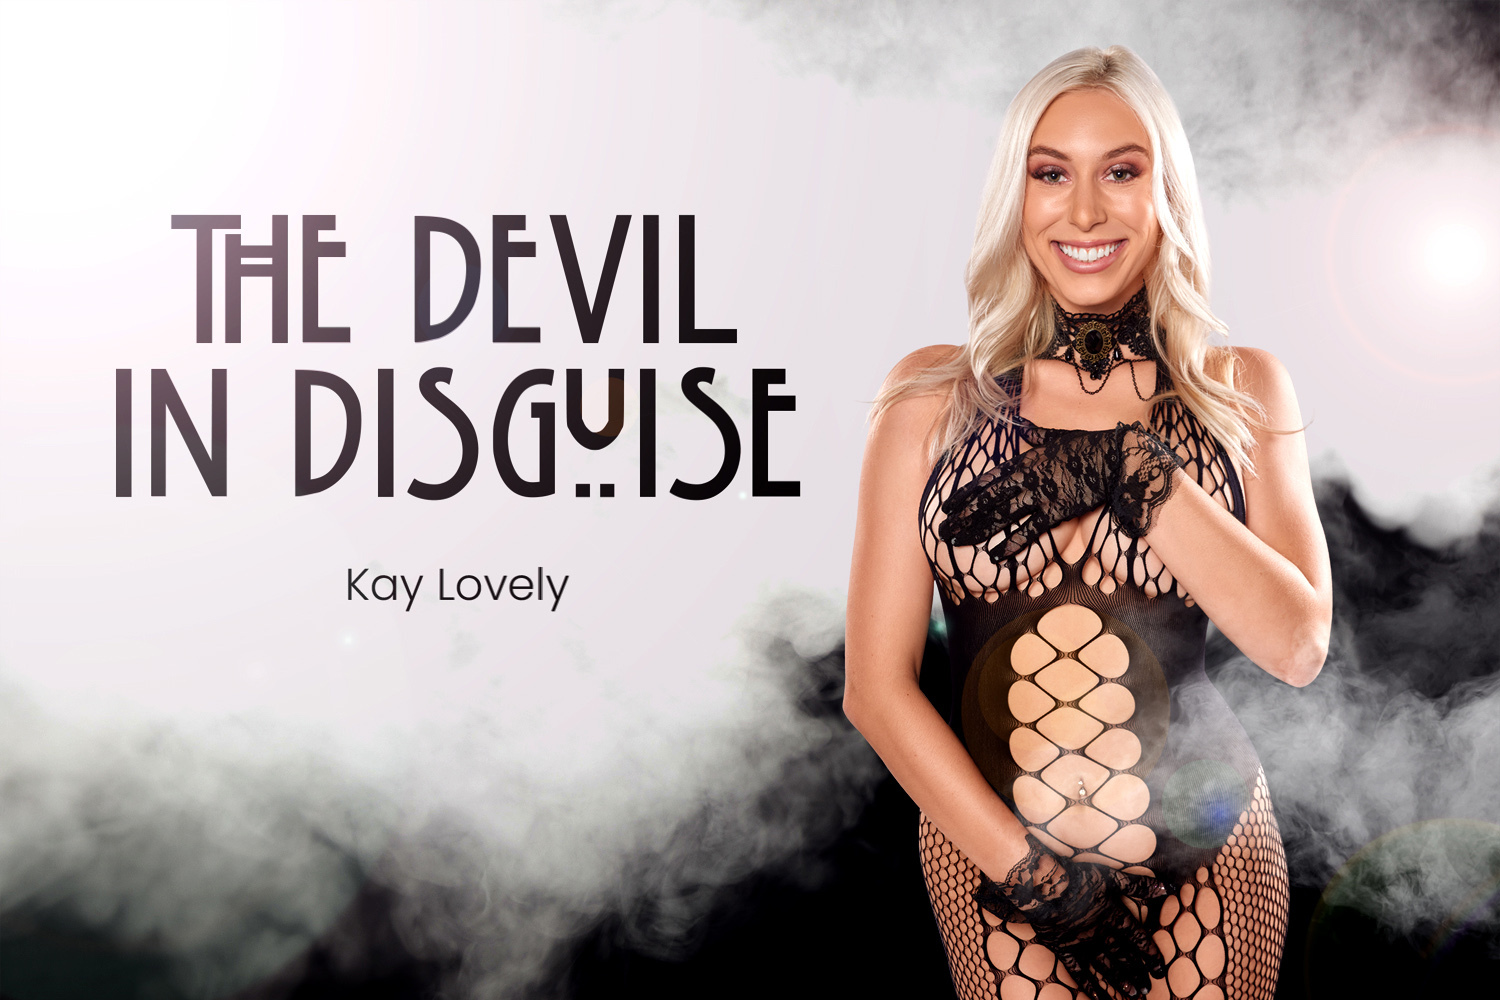 The Devil In Disguise - Kay Lovely